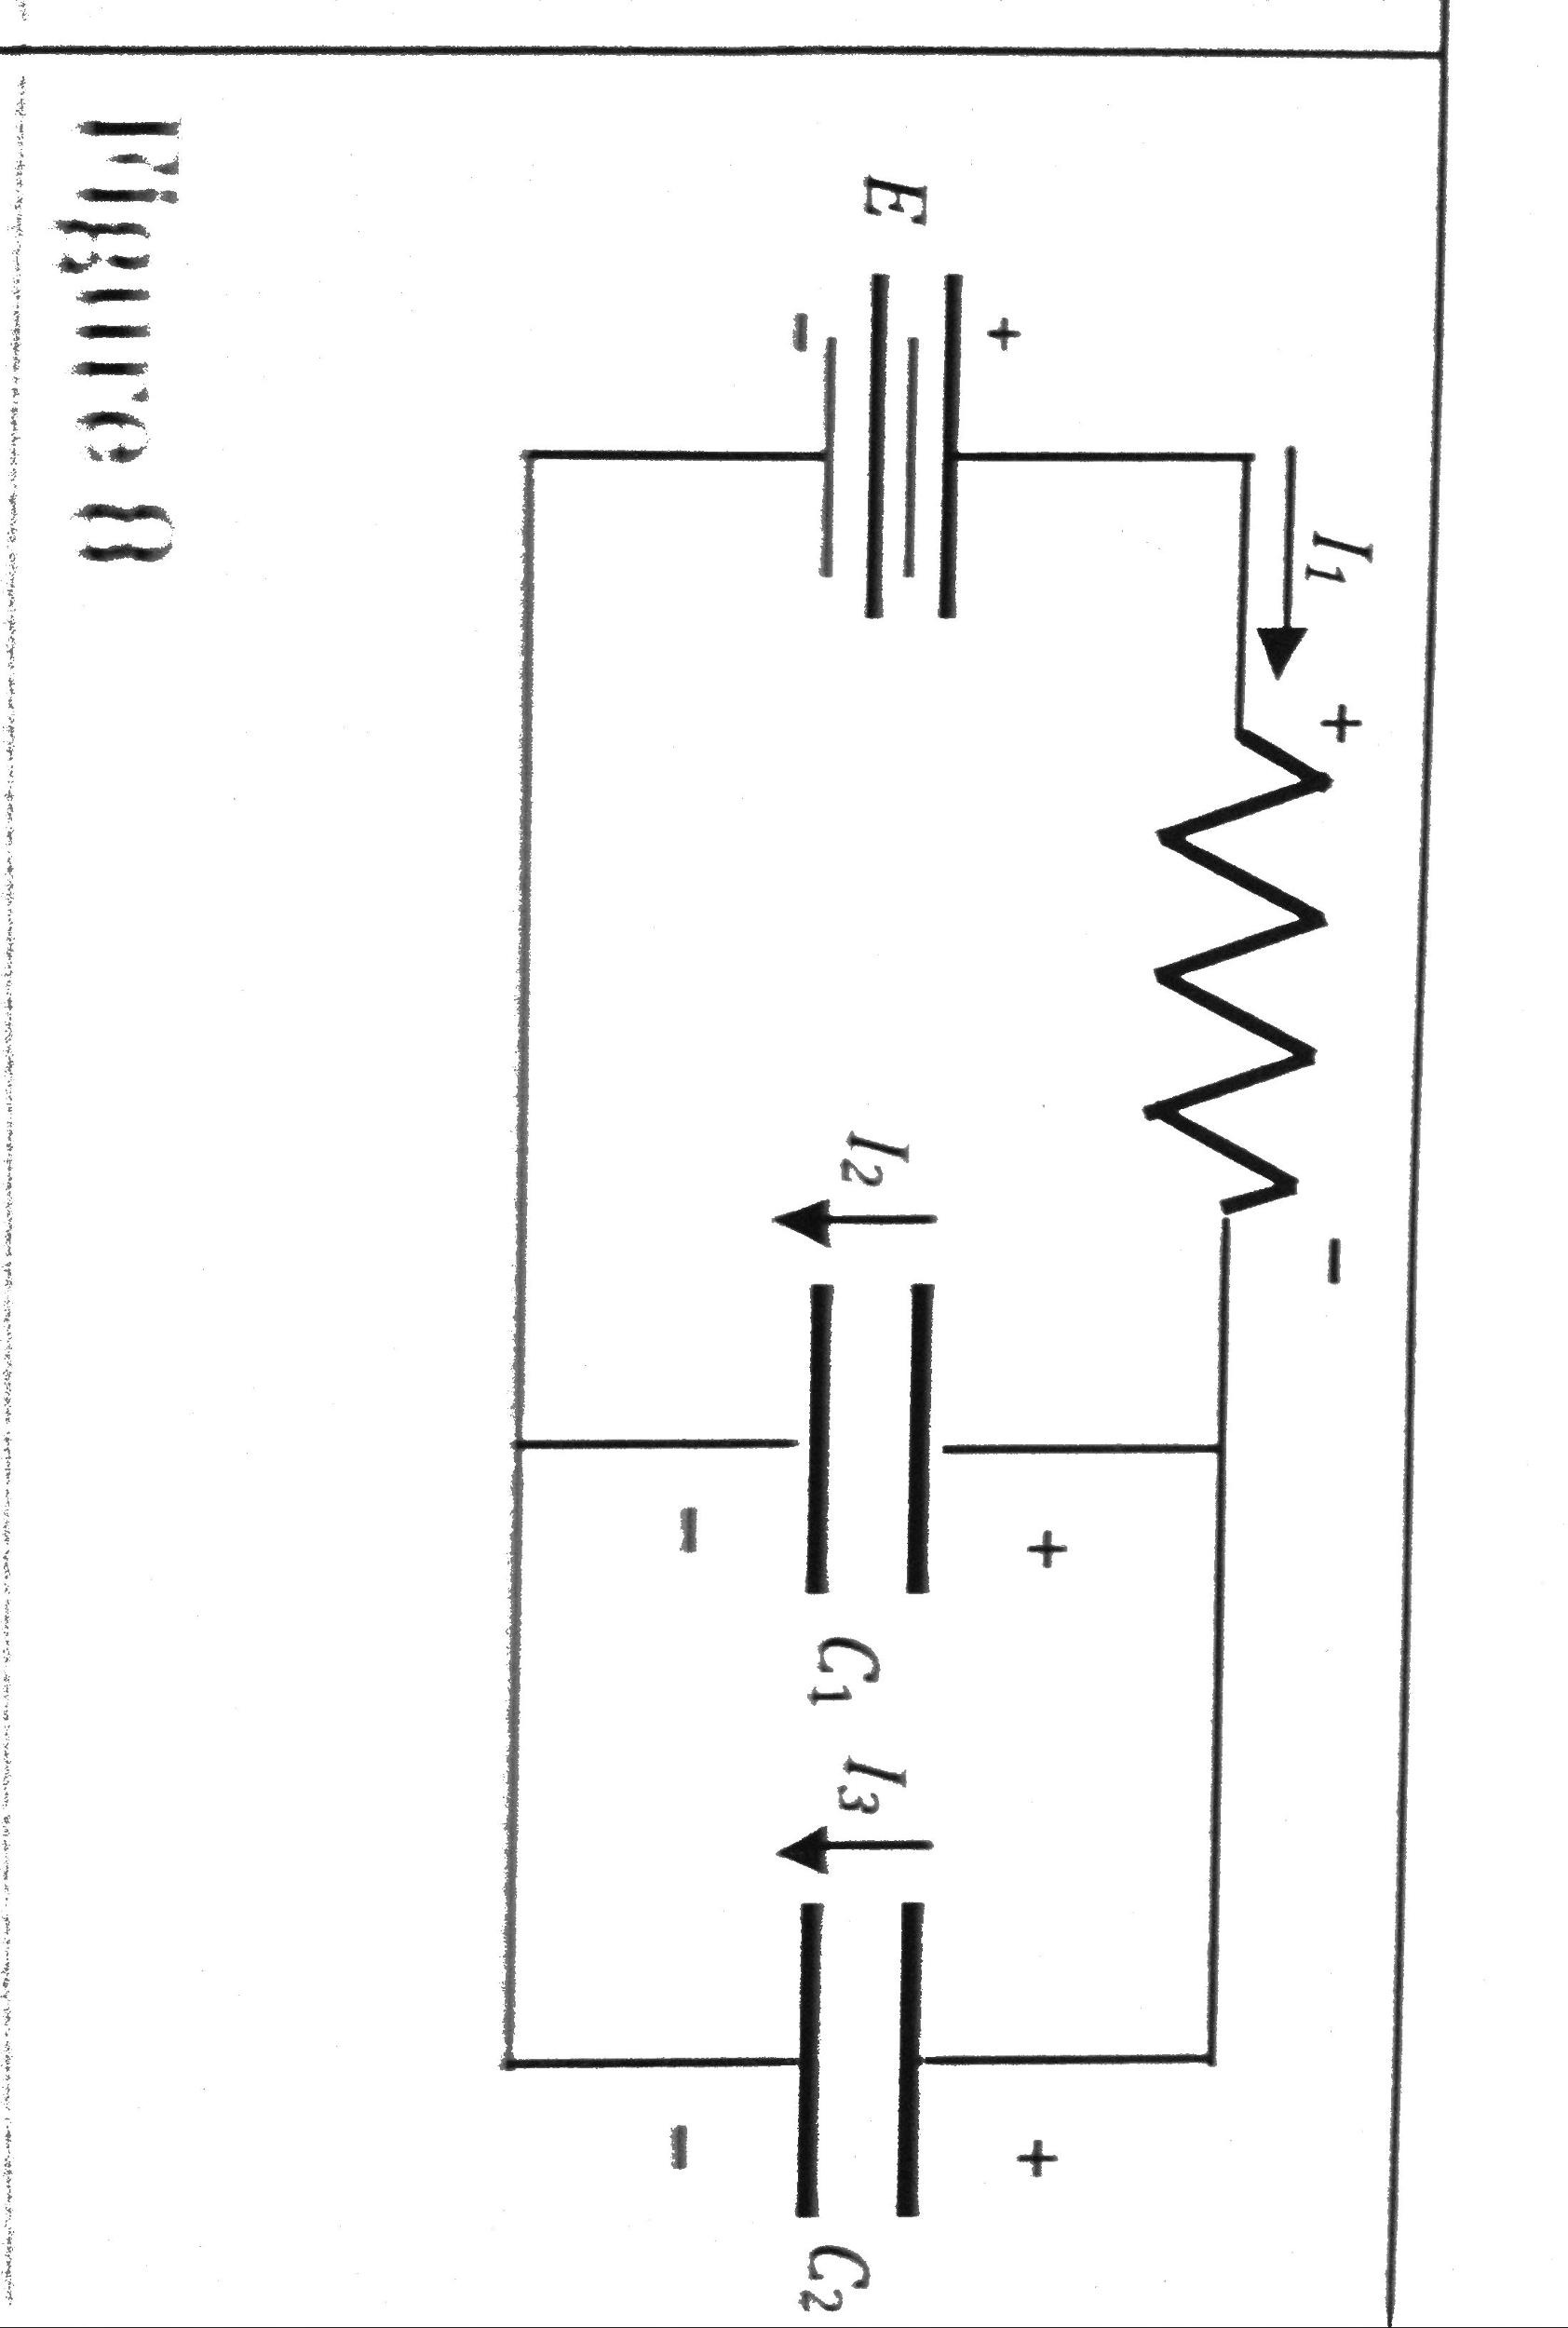 In Figure 8, E = +10V, R = 5 Ohms and C1 = C2 = 1C